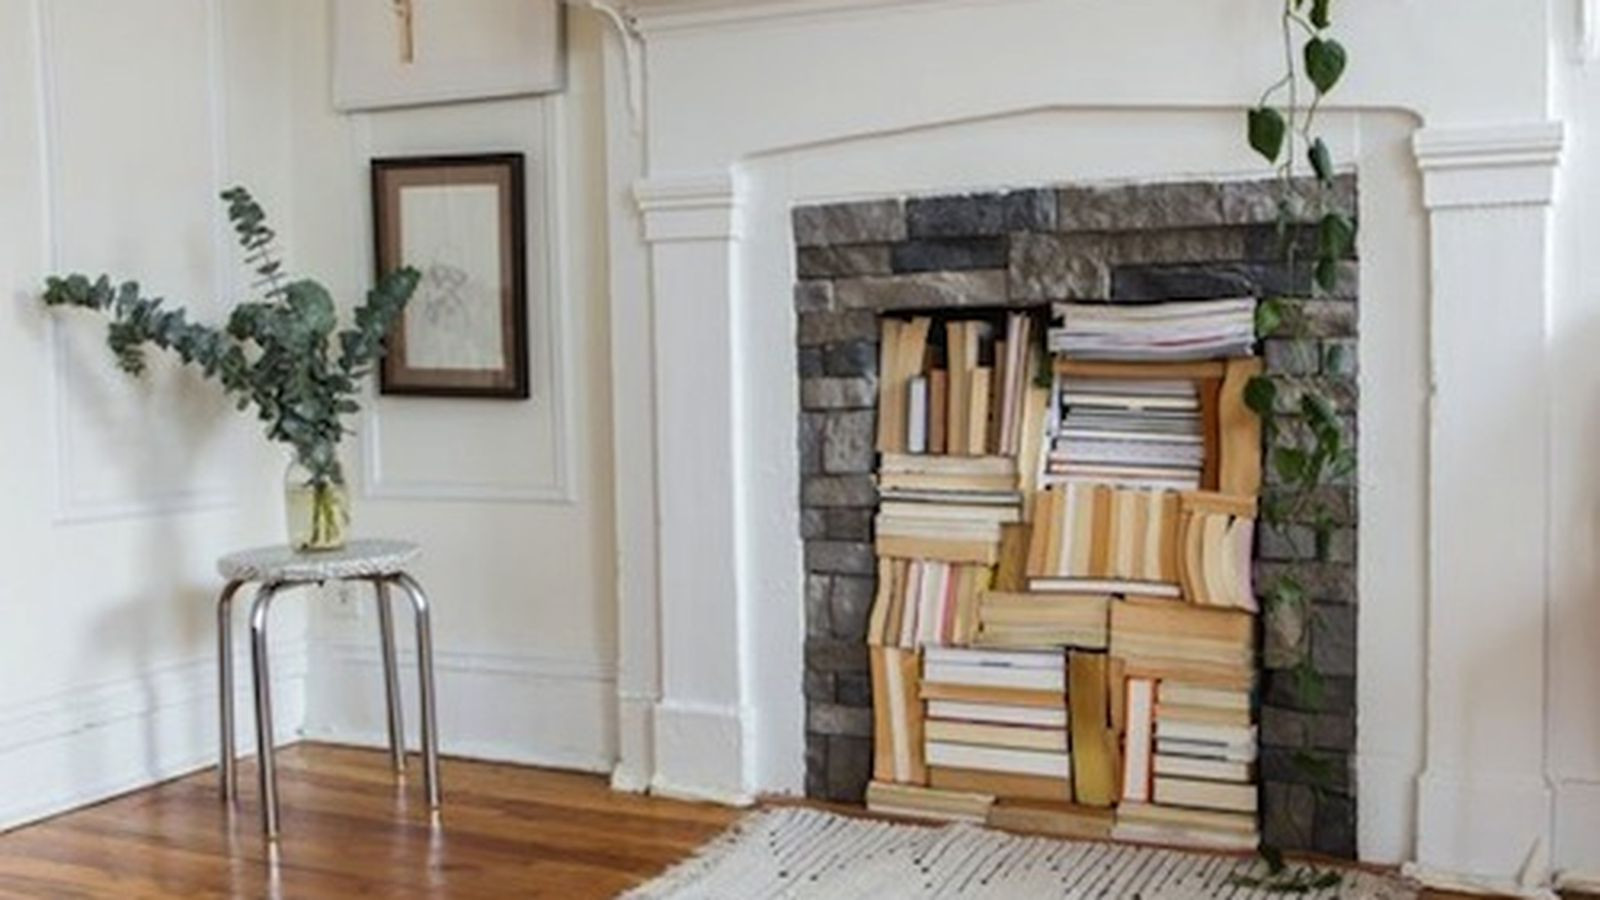 Jm Hardwood Floors Of Heres A Great Way to Store Books if You Hate Reading Curbed Ny Pertaining to Jm5 0